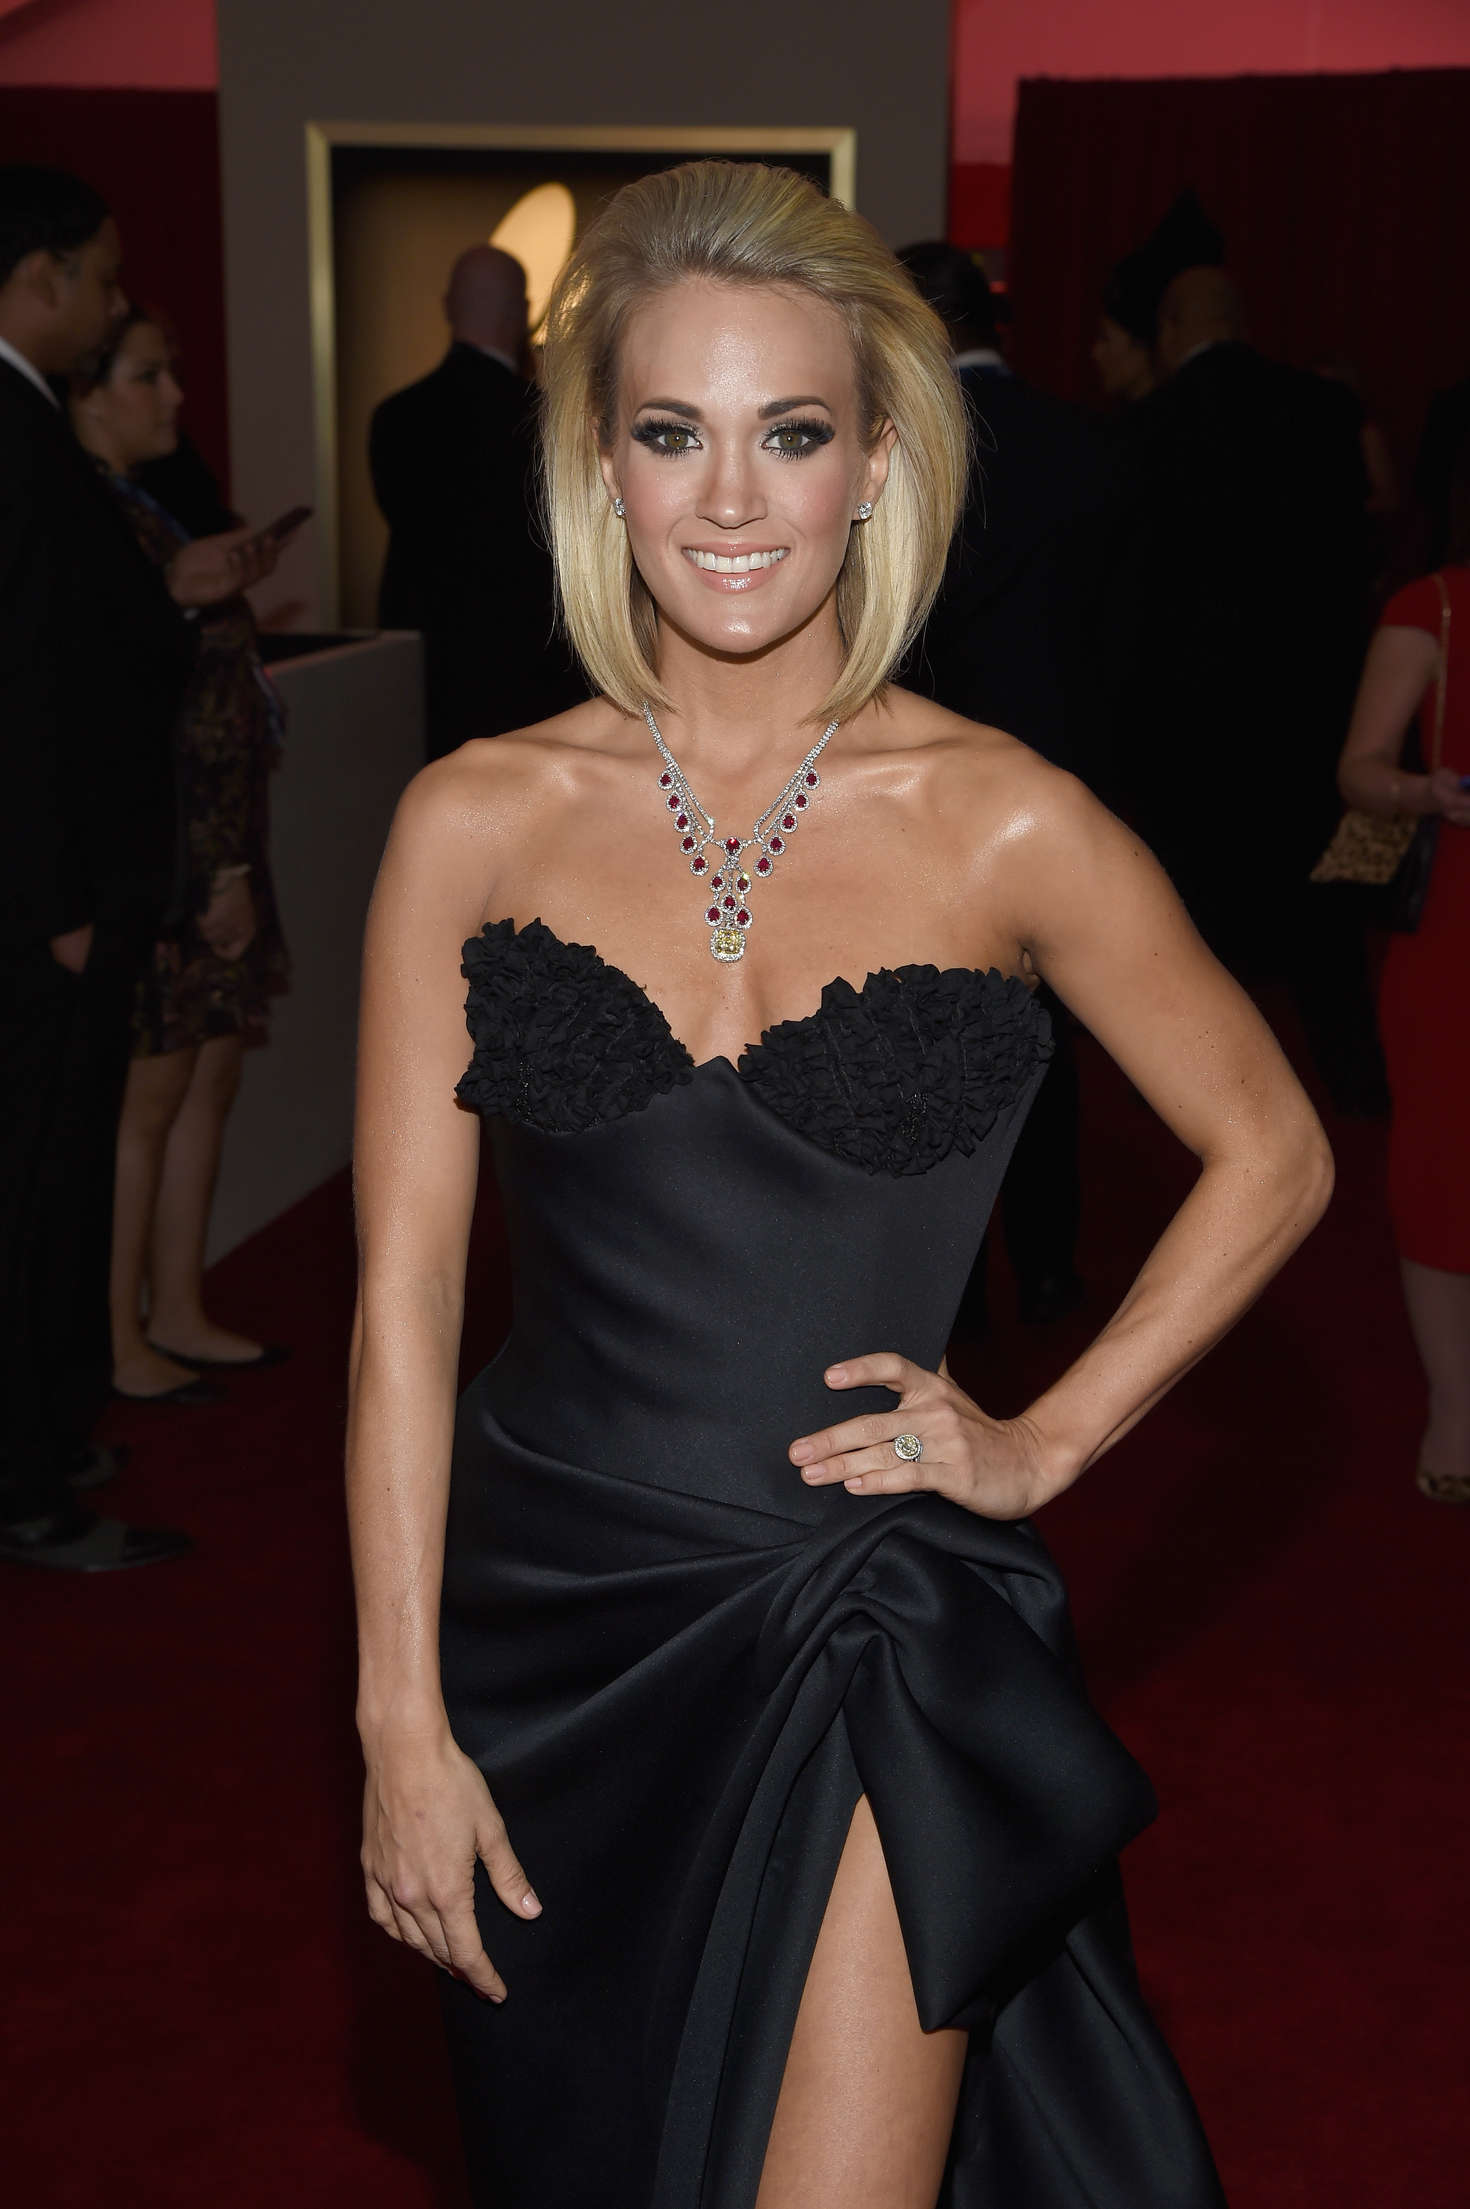 41 Carrie Underwood Hot Bikini Pictures - Prove That She Is Sexy Singer